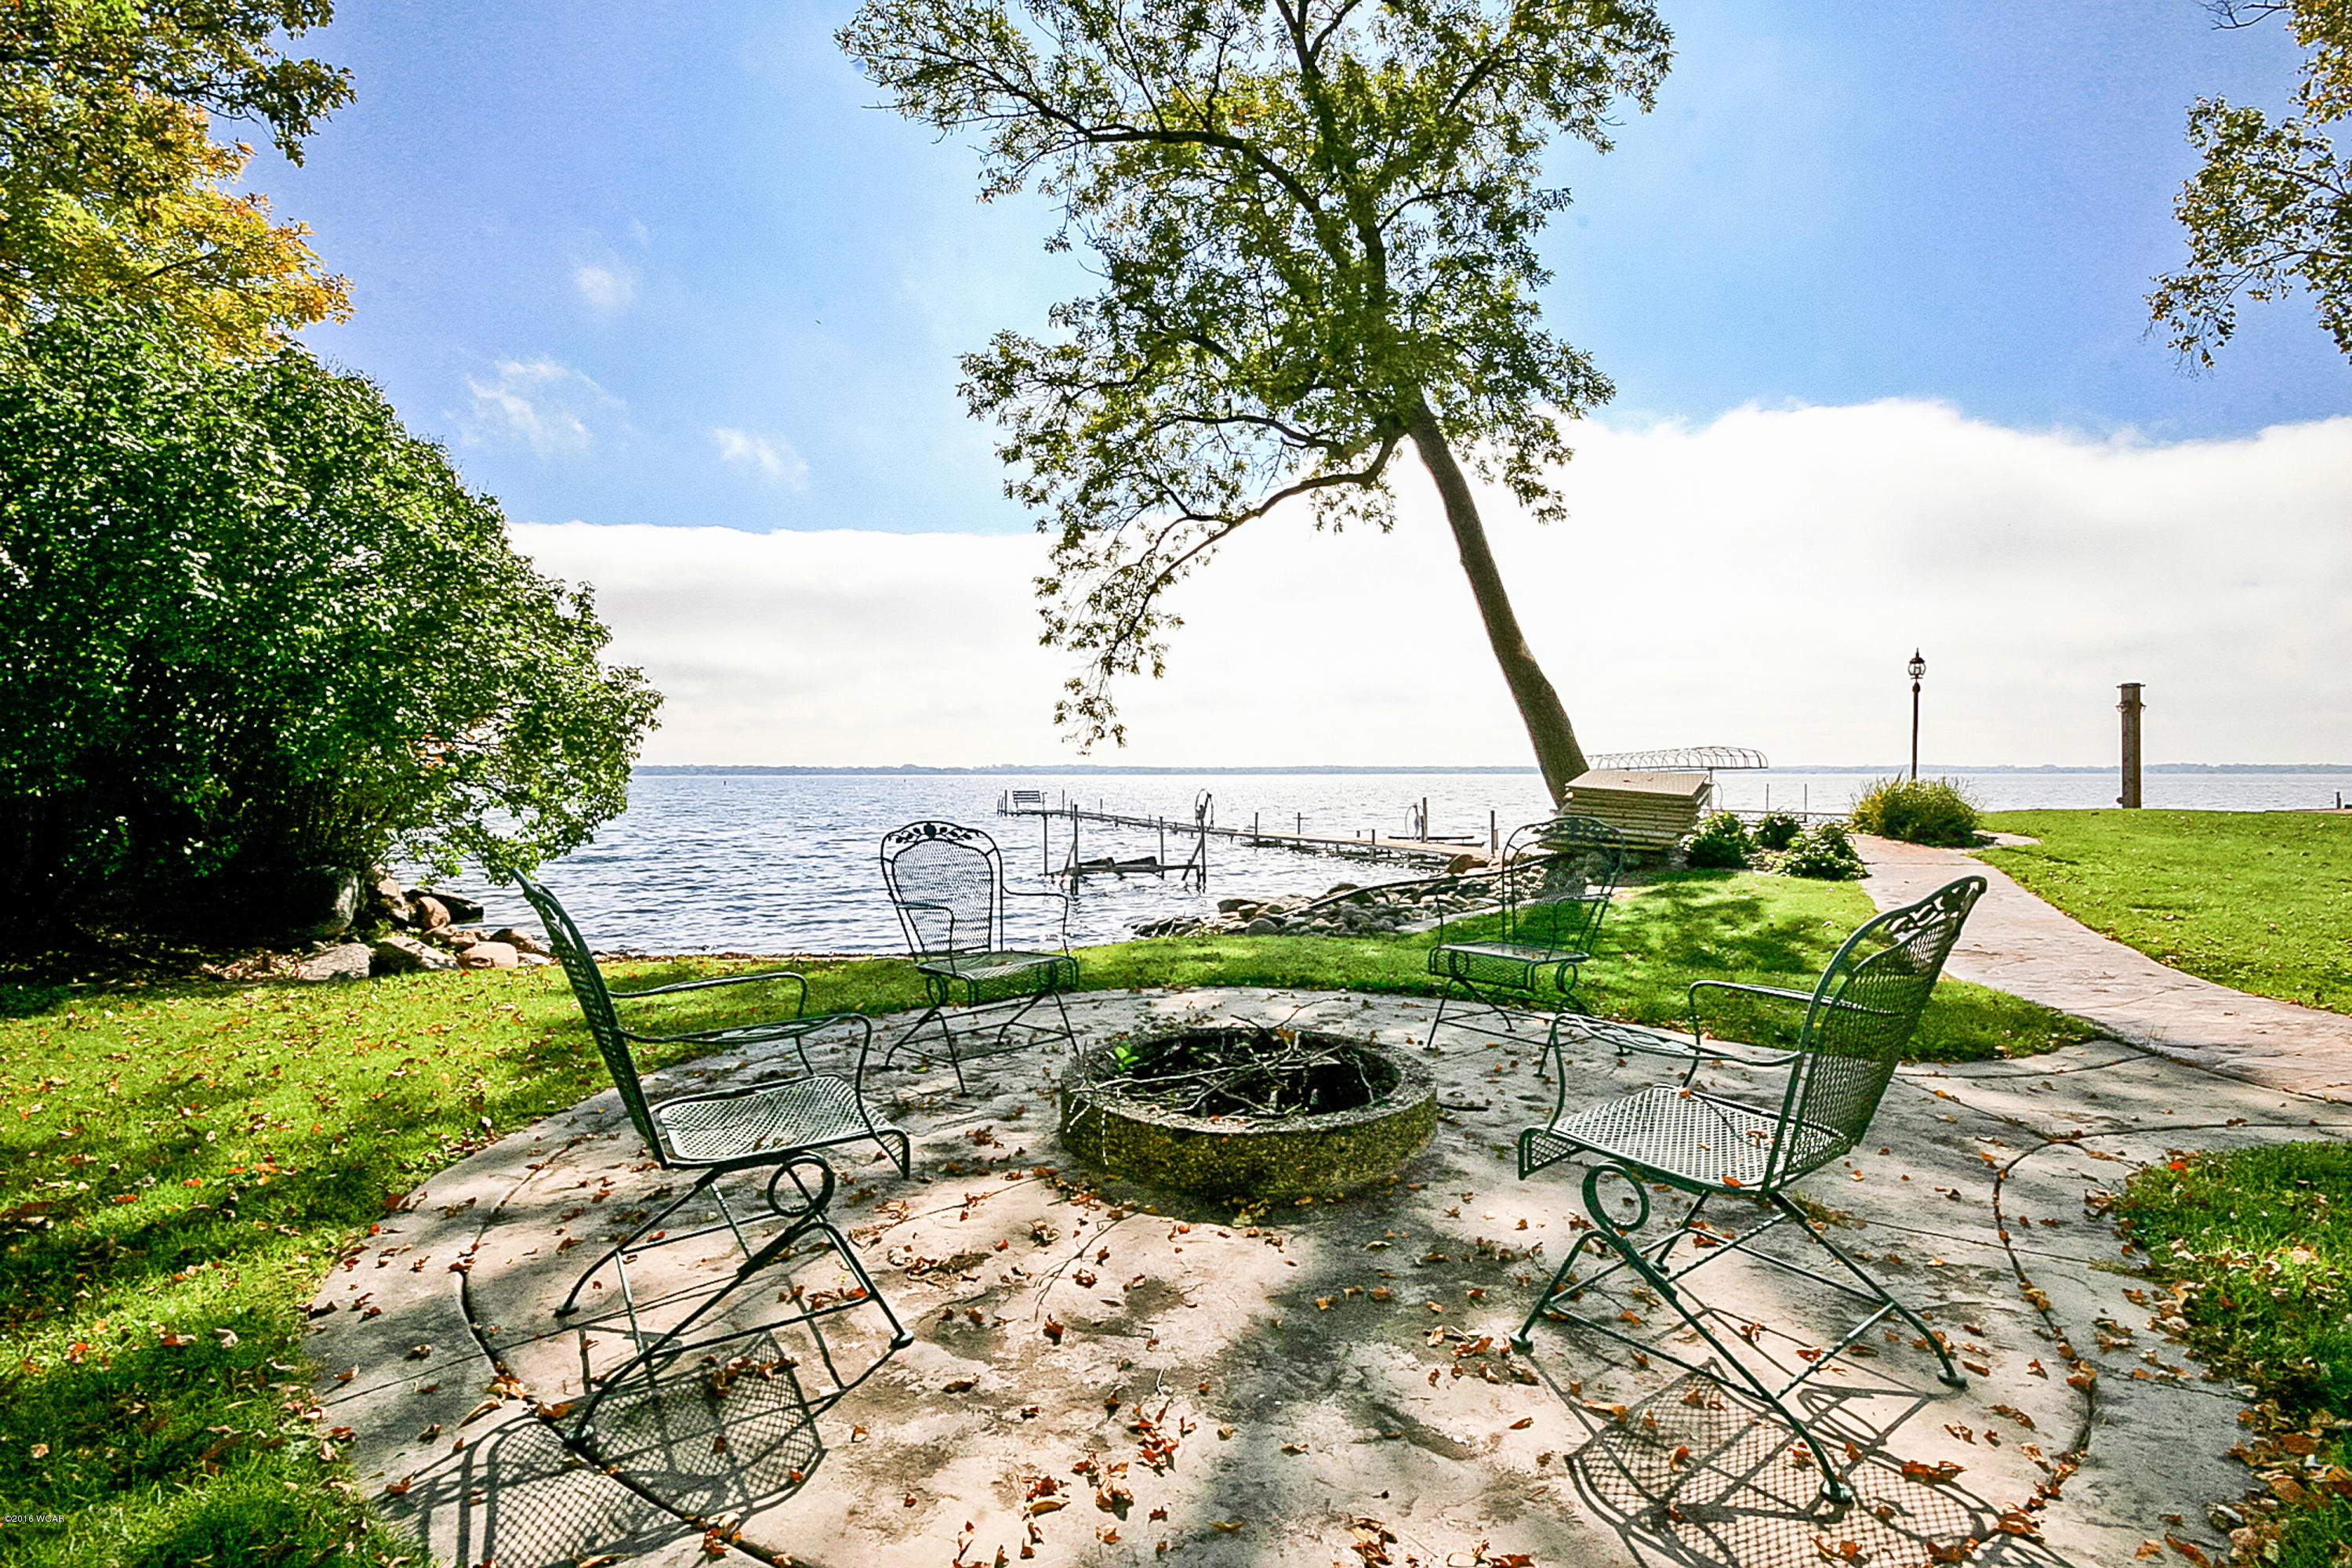 11151 N Shore Drive,Spicer,3 Bedrooms Bedrooms,4 BathroomsBathrooms,Single Family,N Shore Drive,6033078